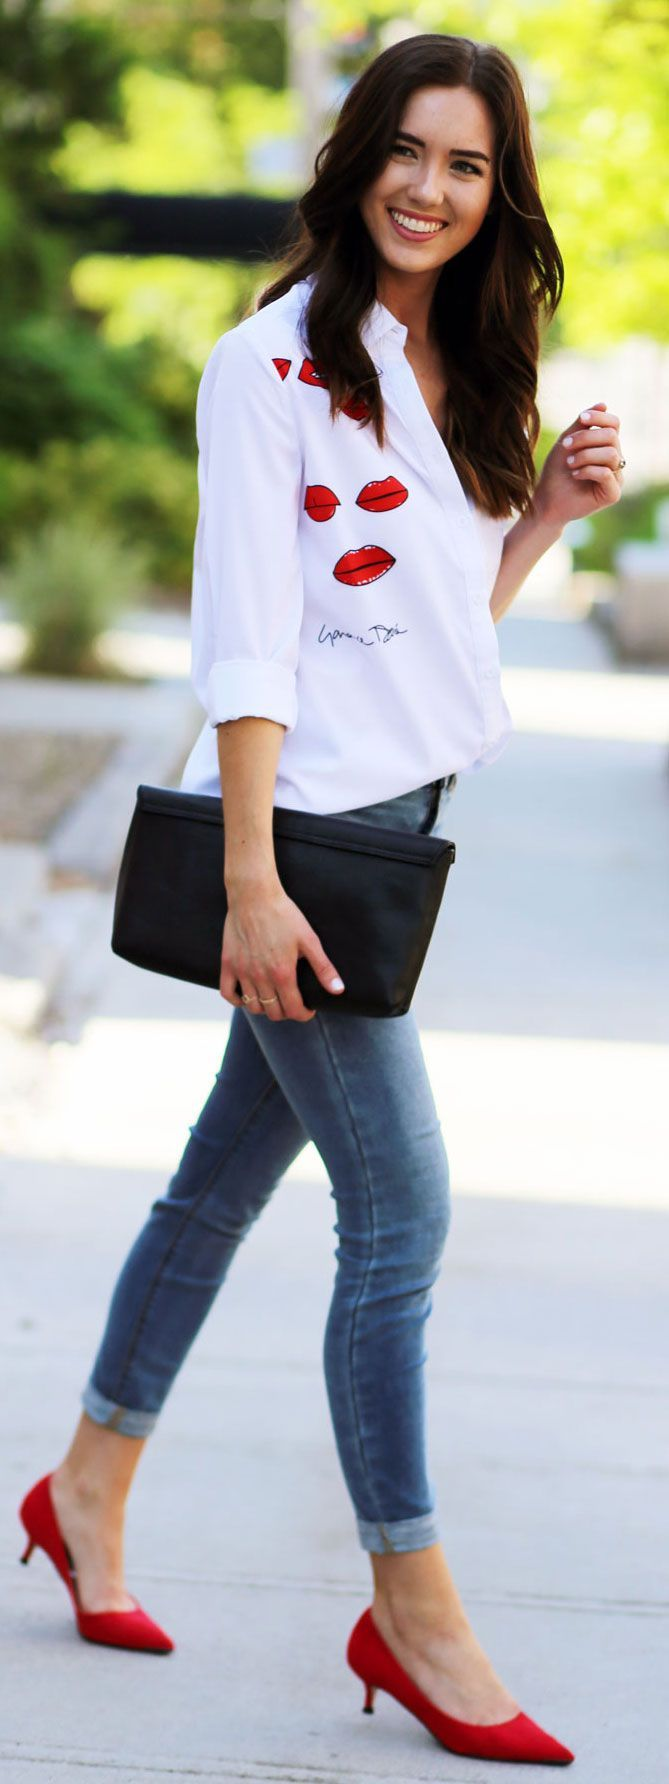 OMG how cute is this white buttons down shirt with red kisses lips all over?! Perfect outfit for Fourth of July! Shirt is less than $20! Fashion blogger Marie's Bazaar shows how to wear it for a casual date night with red kitten heels